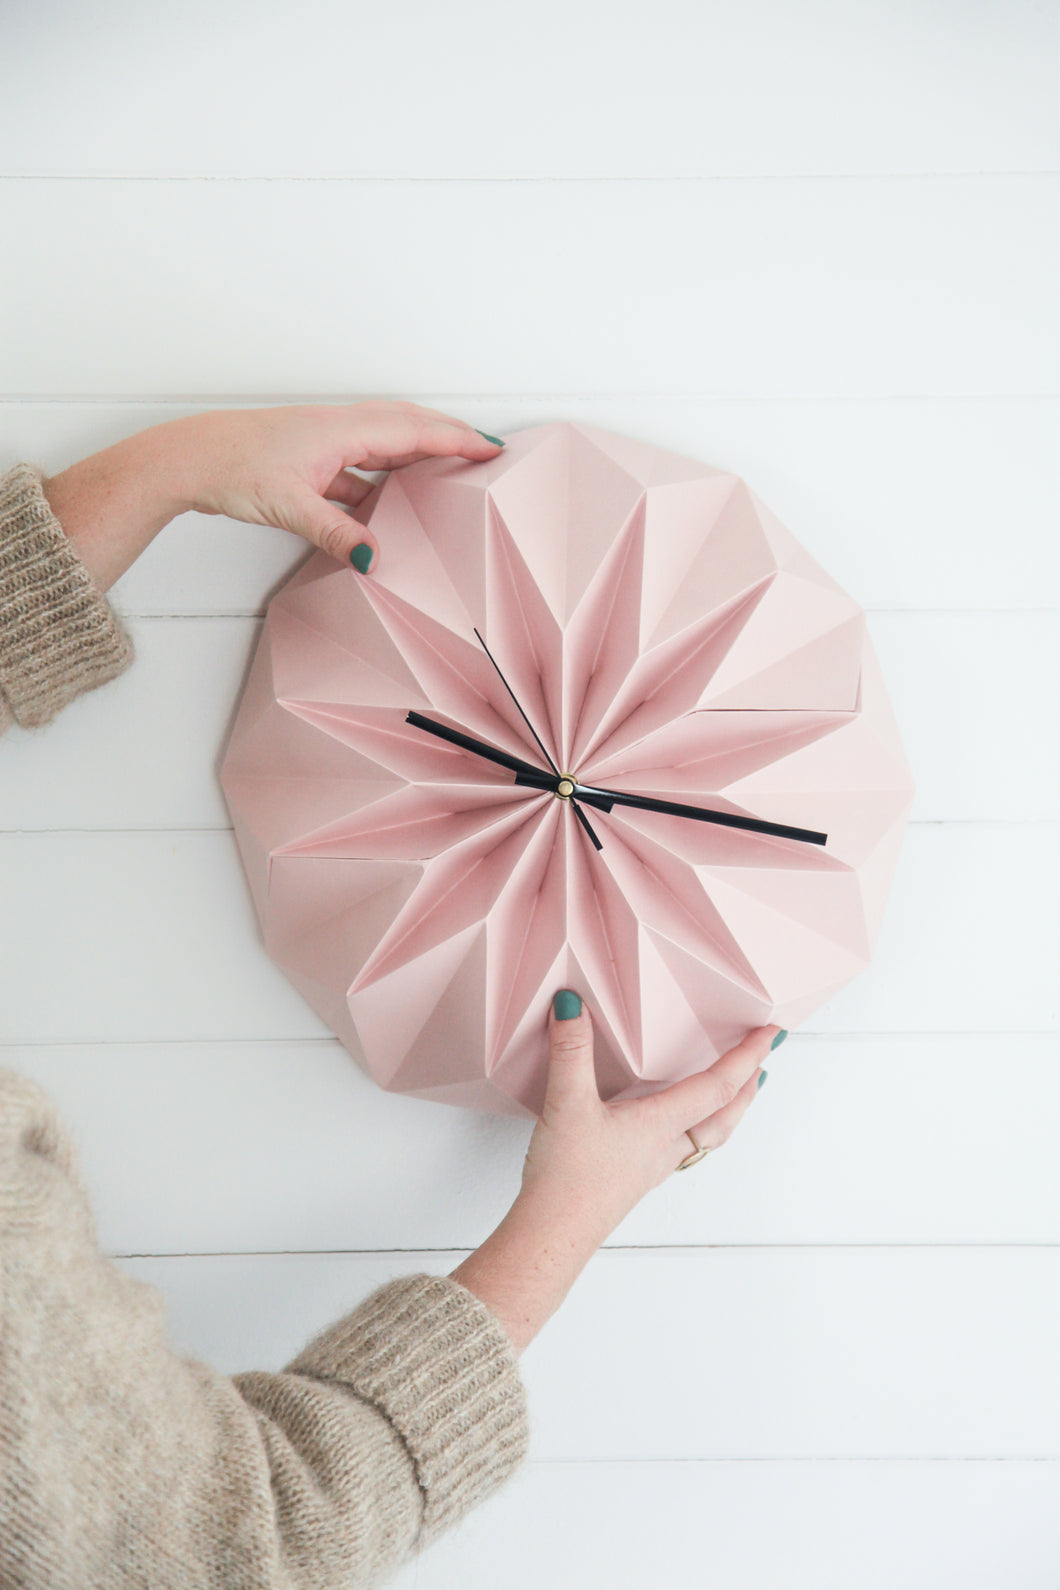 MADE TO ORDER ORIGAMI CLOCK